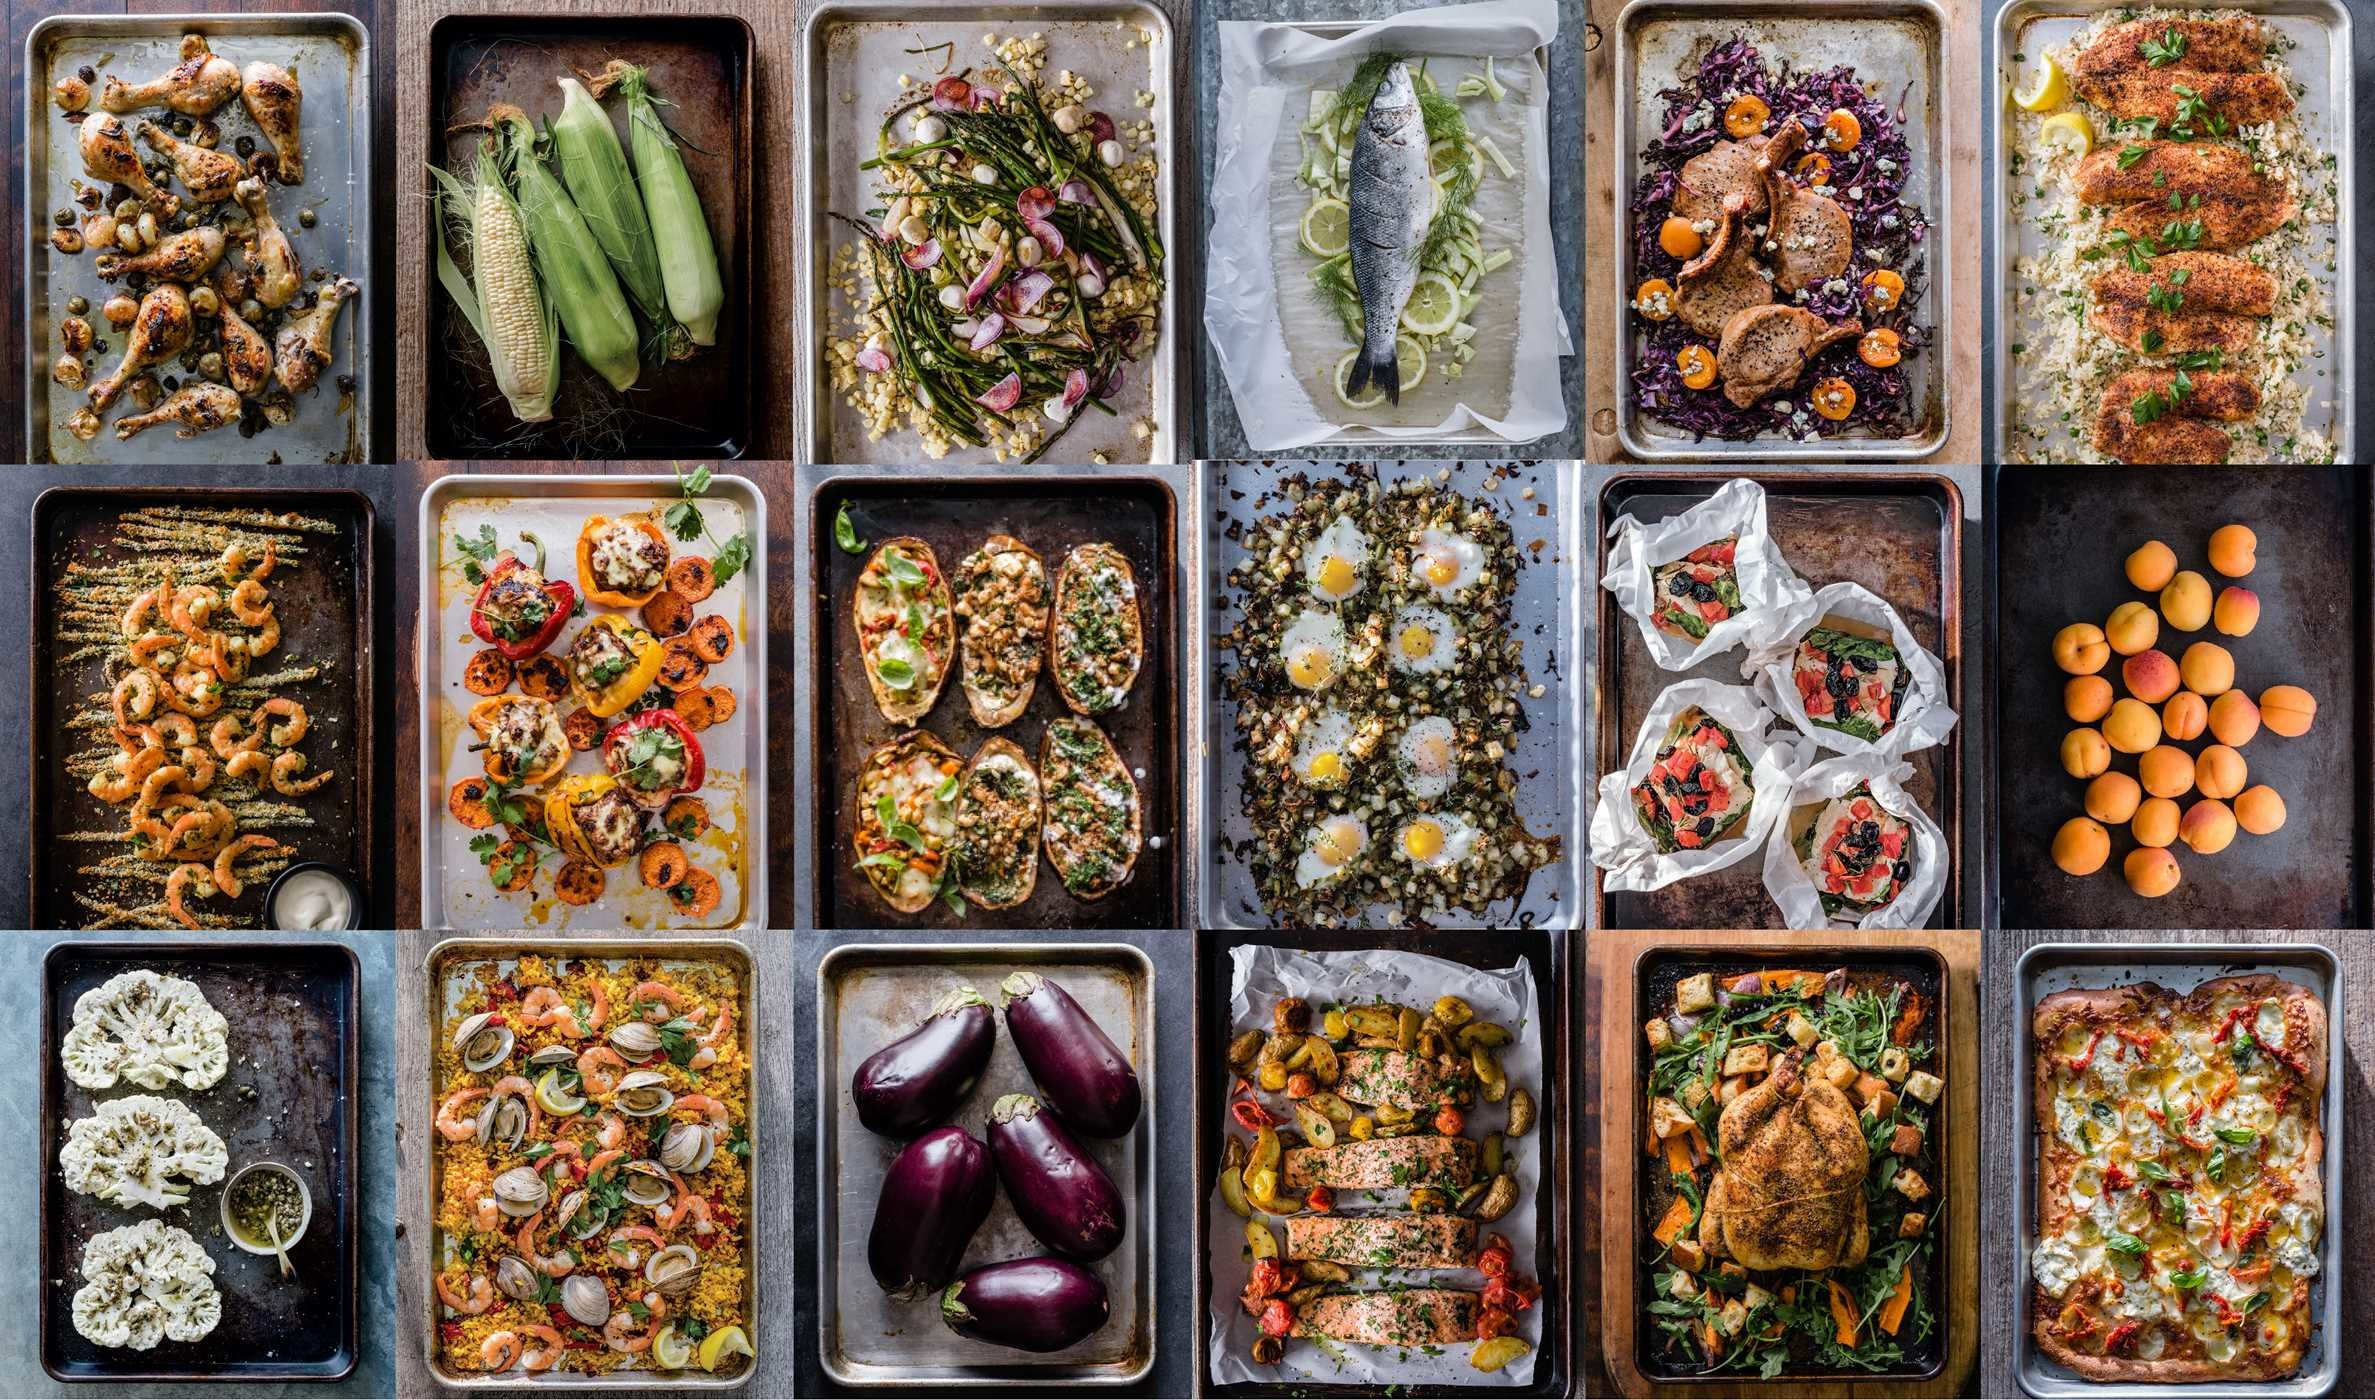 Sheet pan dinners 9781681881379.in01